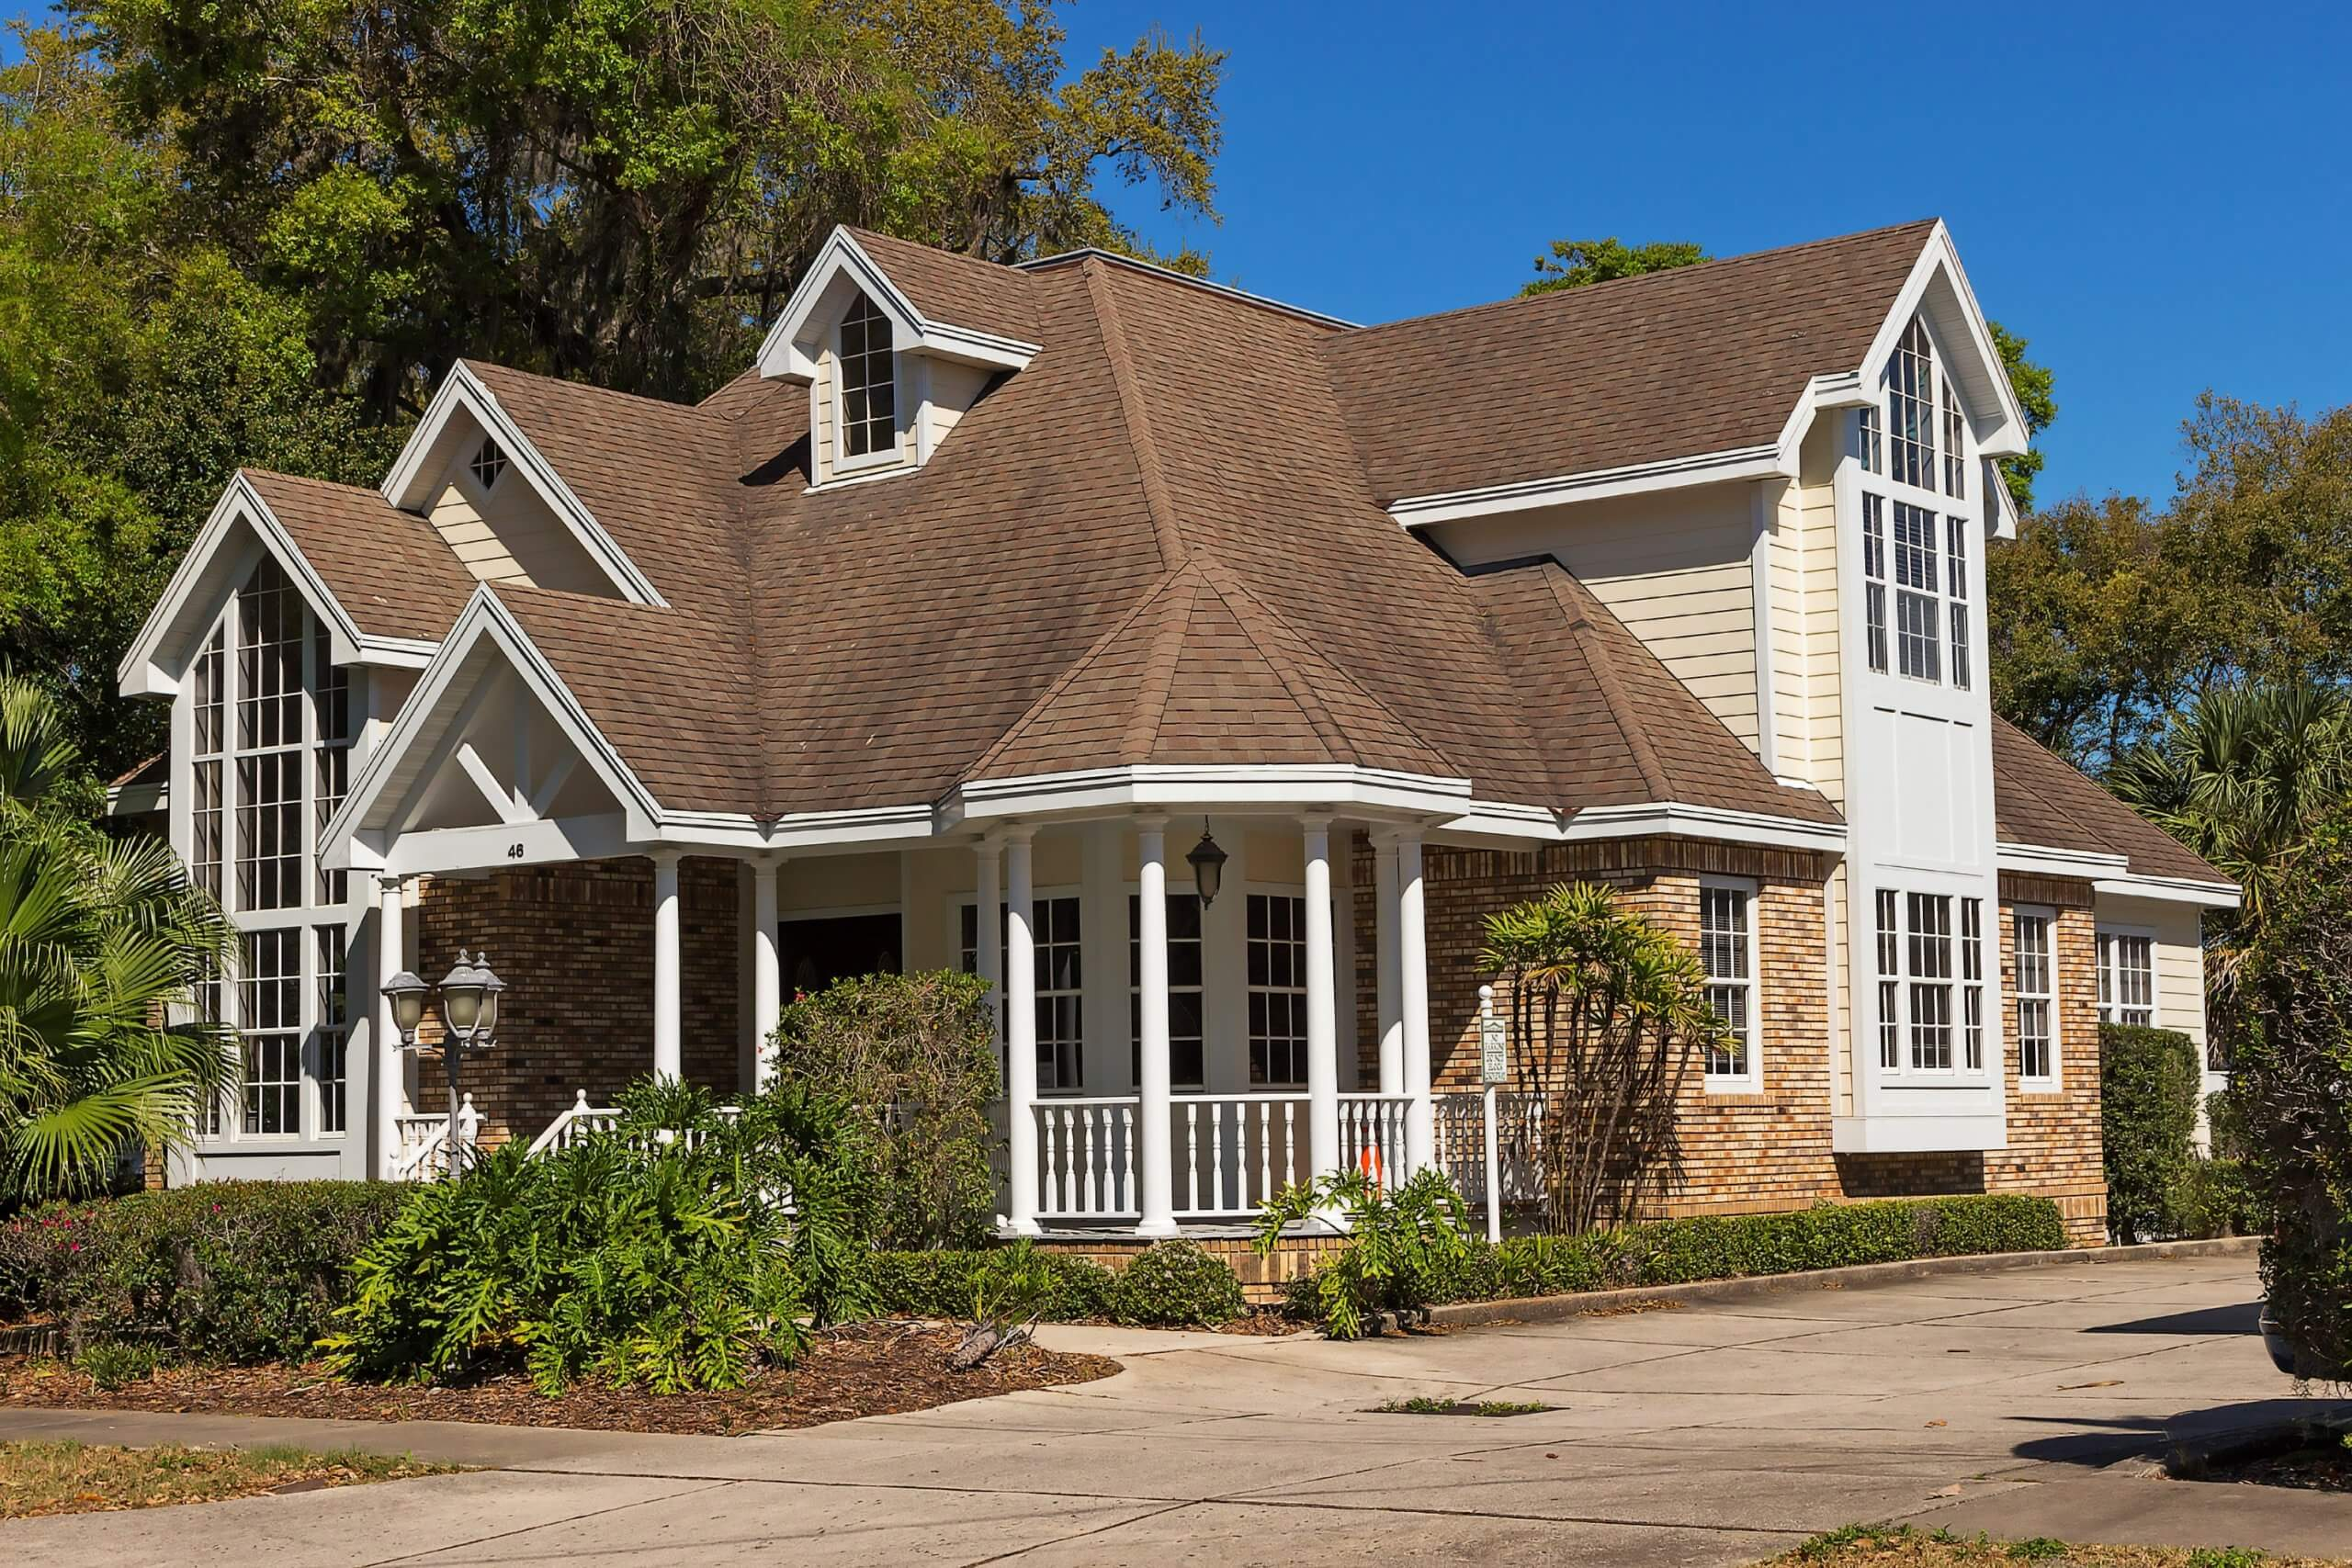 What Is the Cheapest Roofing to Install?